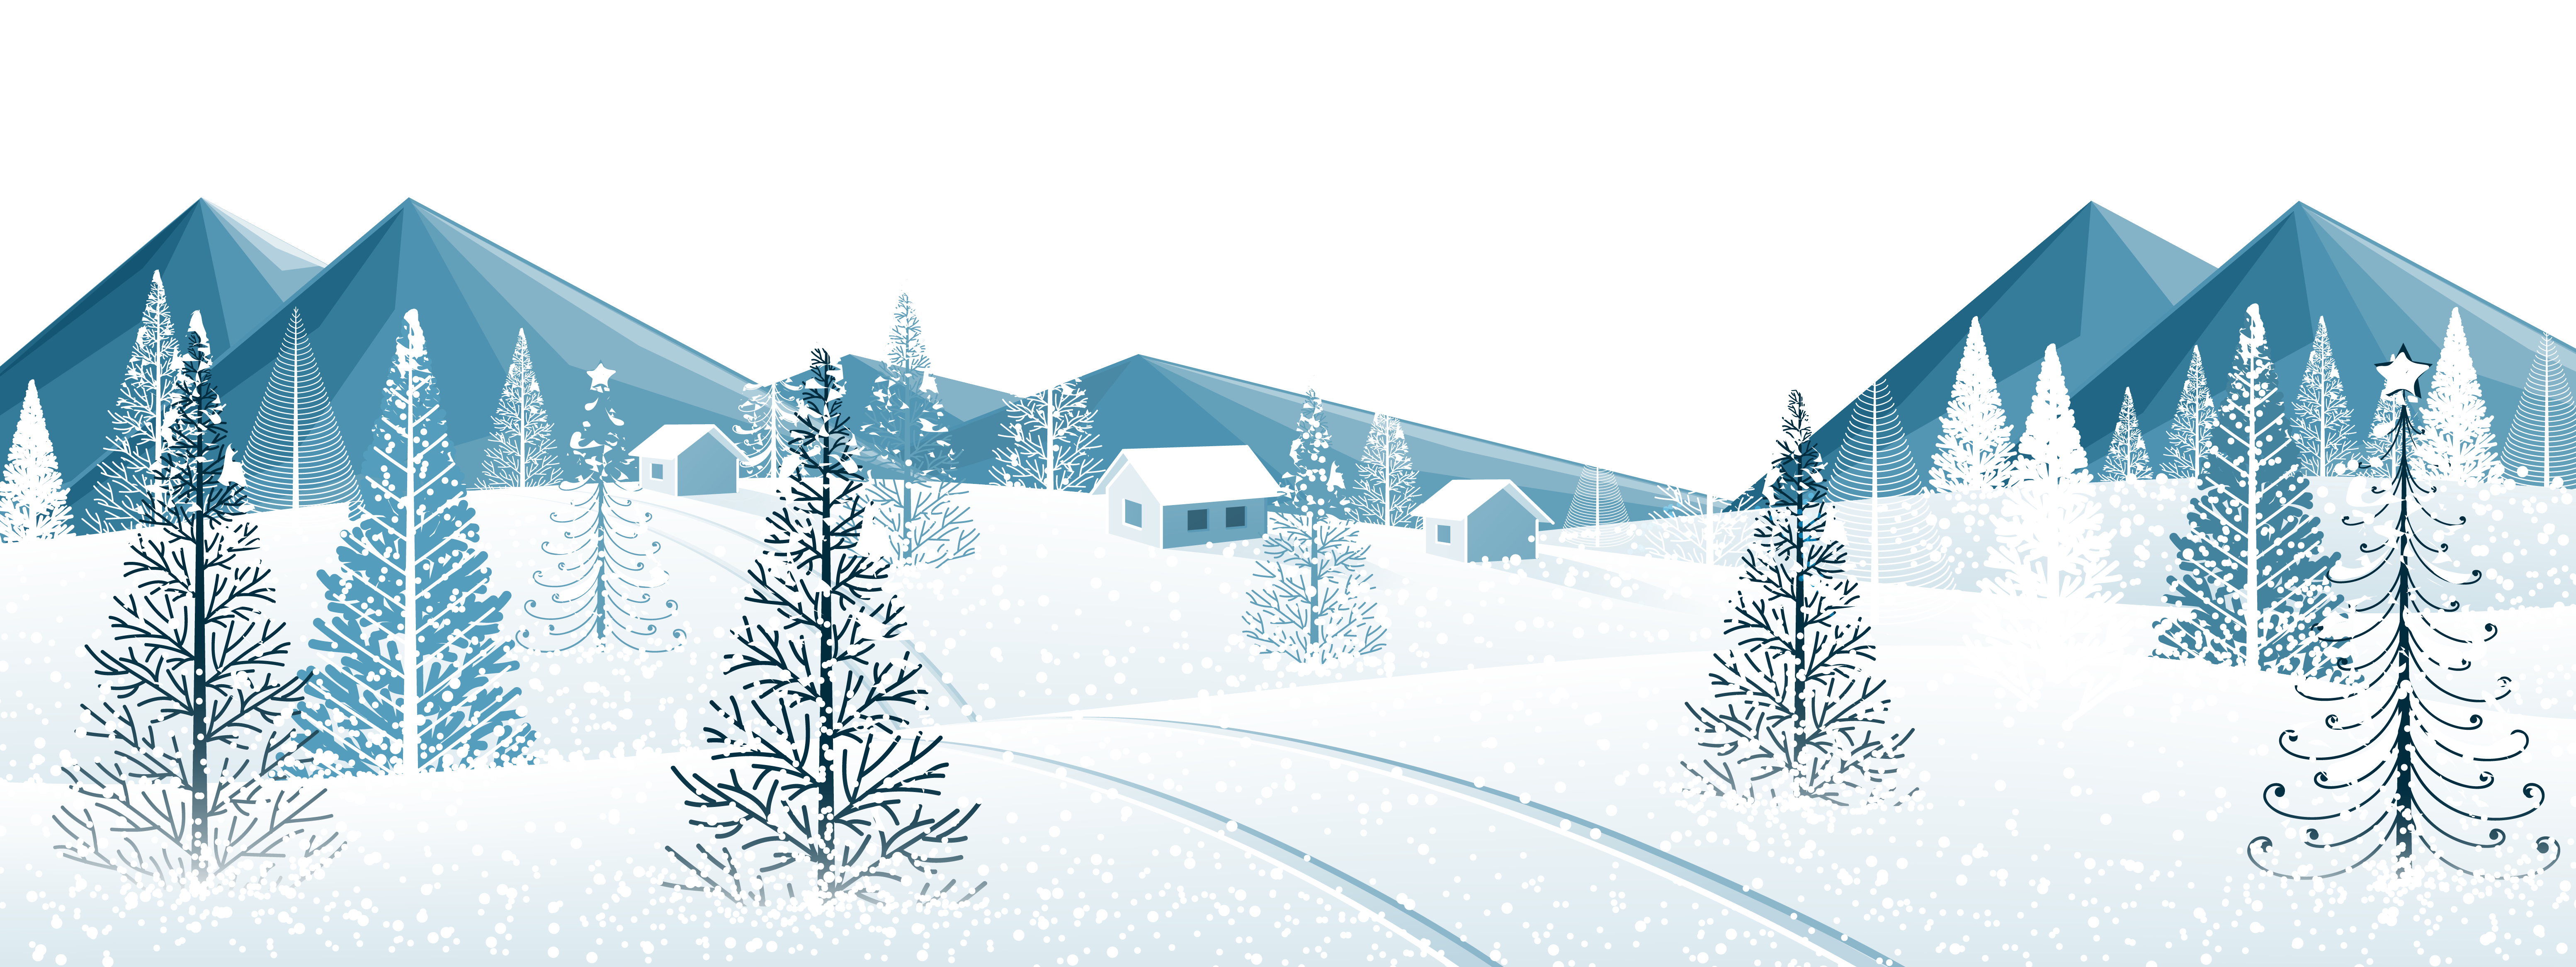 Snow trees png. Winter ground with clipart